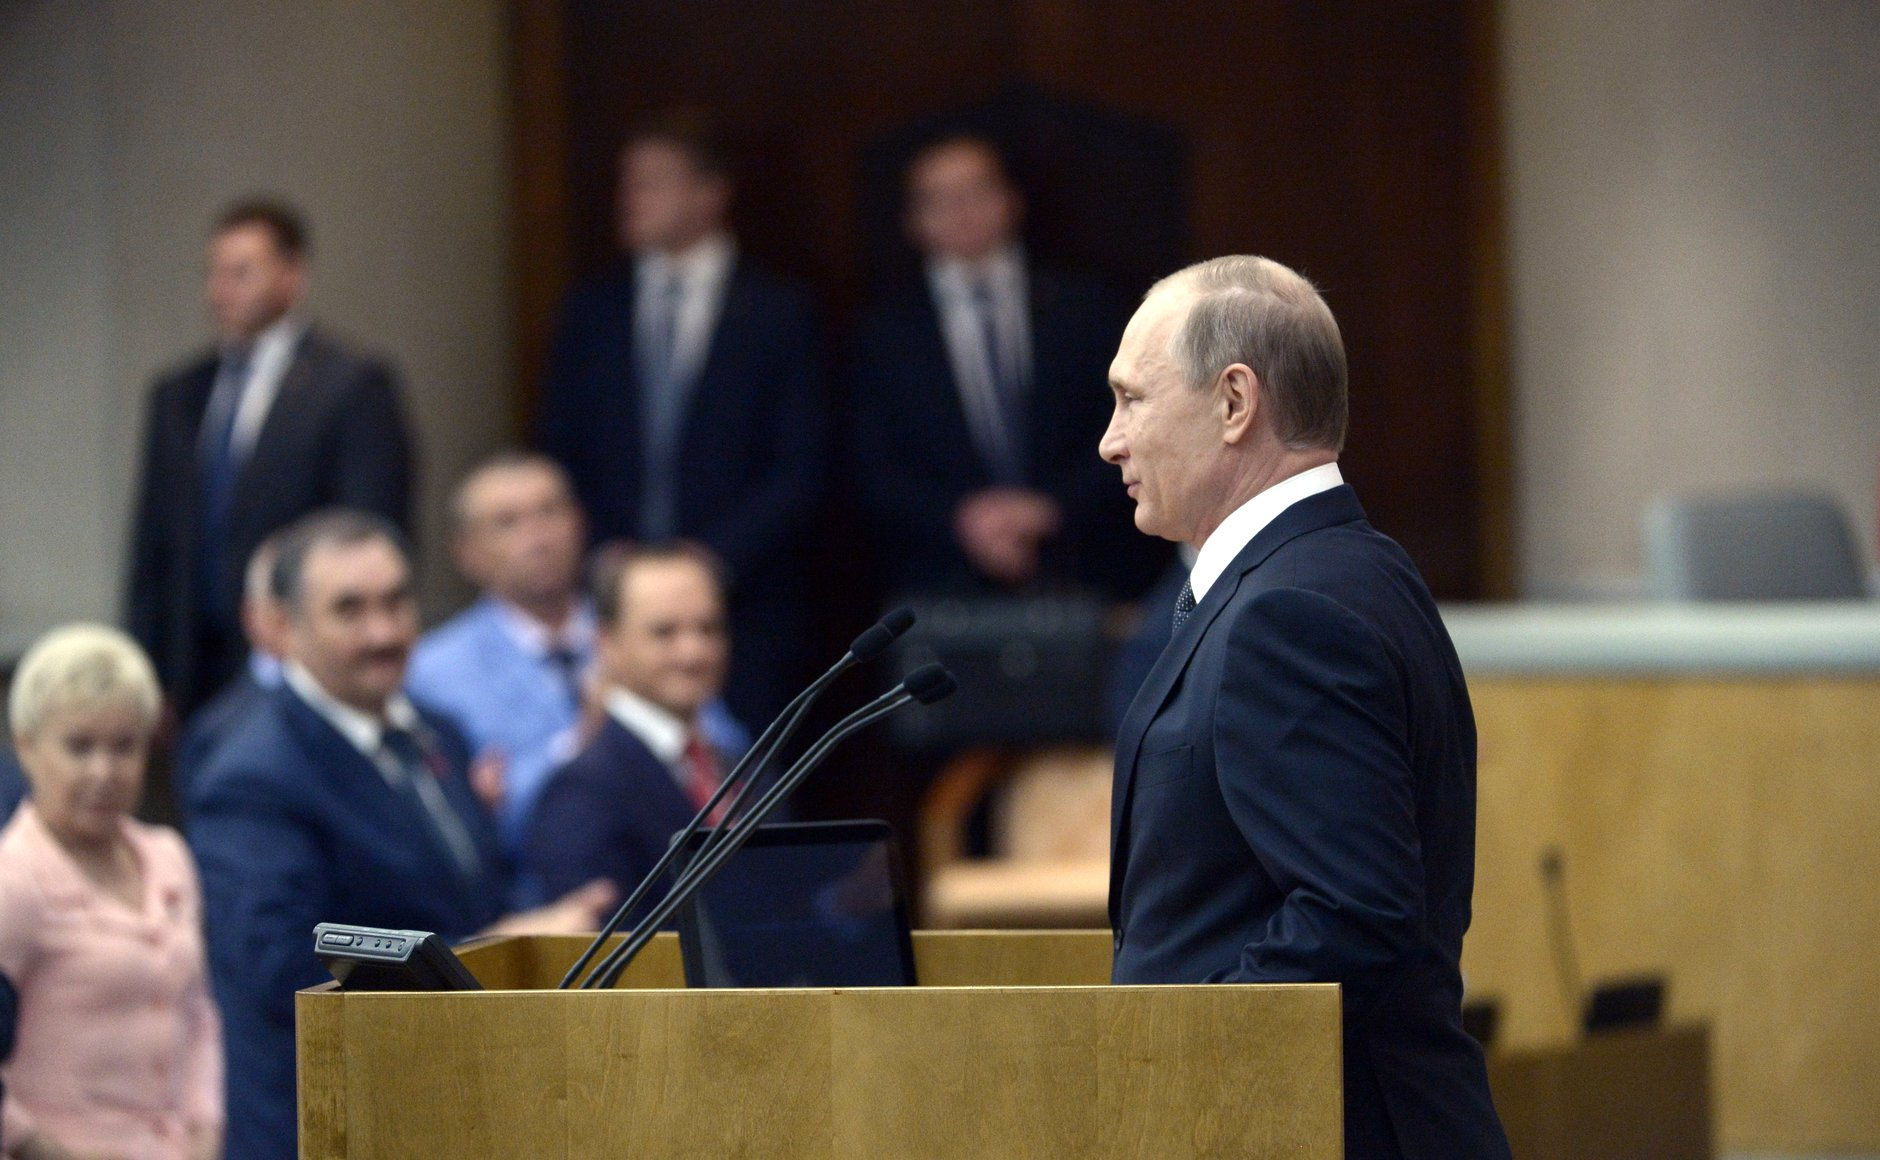 Russian President Vladimir Putin at the State Duma, June 22, 2016.